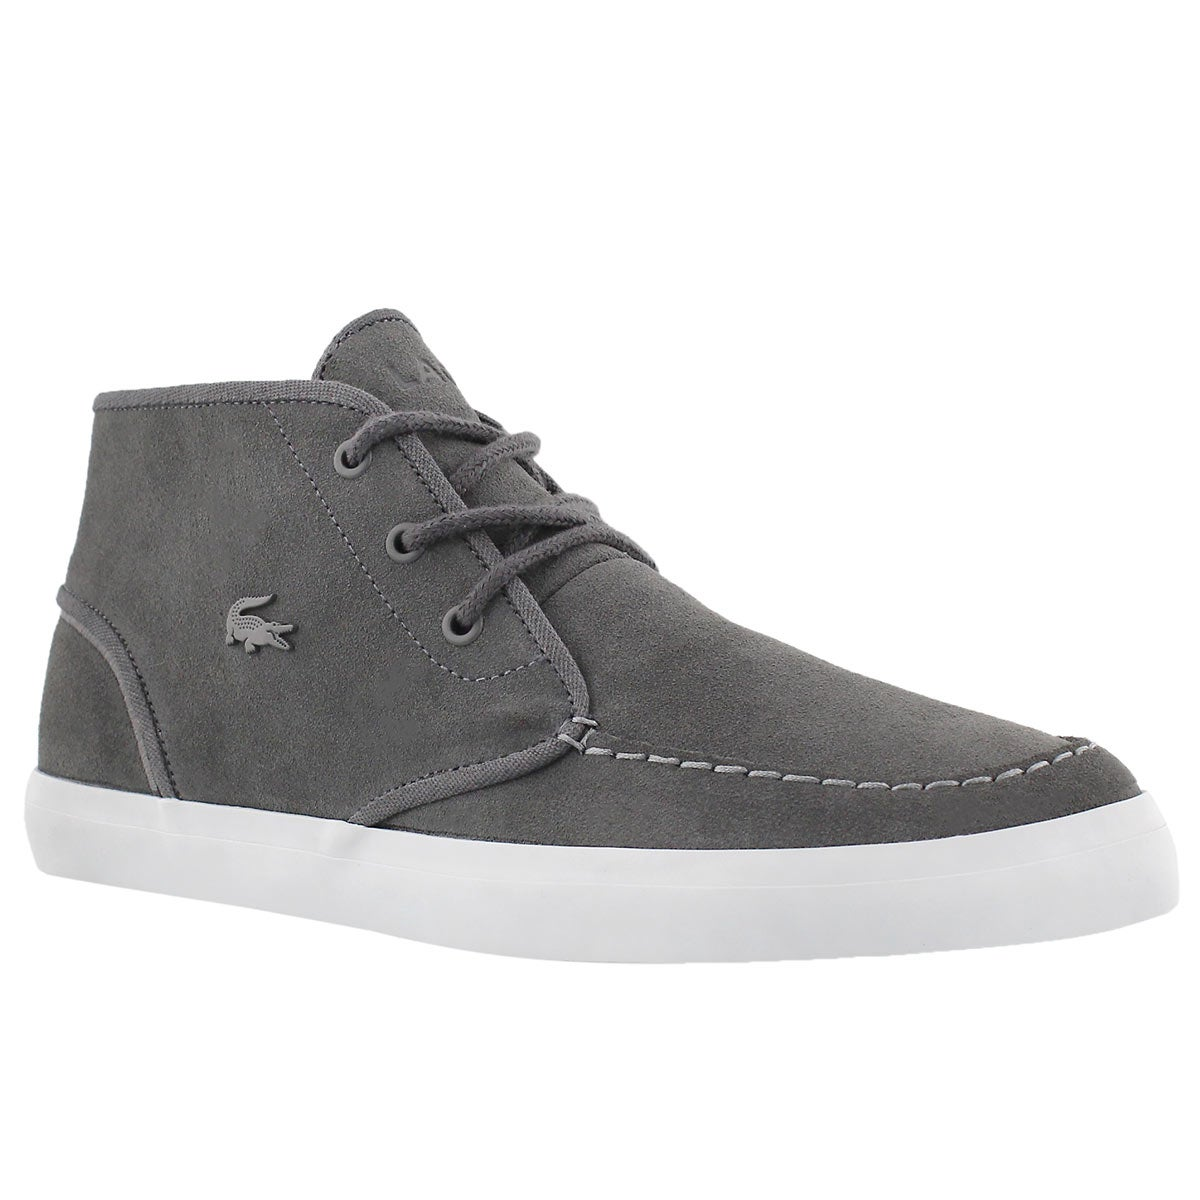 Men's SEVRIN MID grey casual sneakers